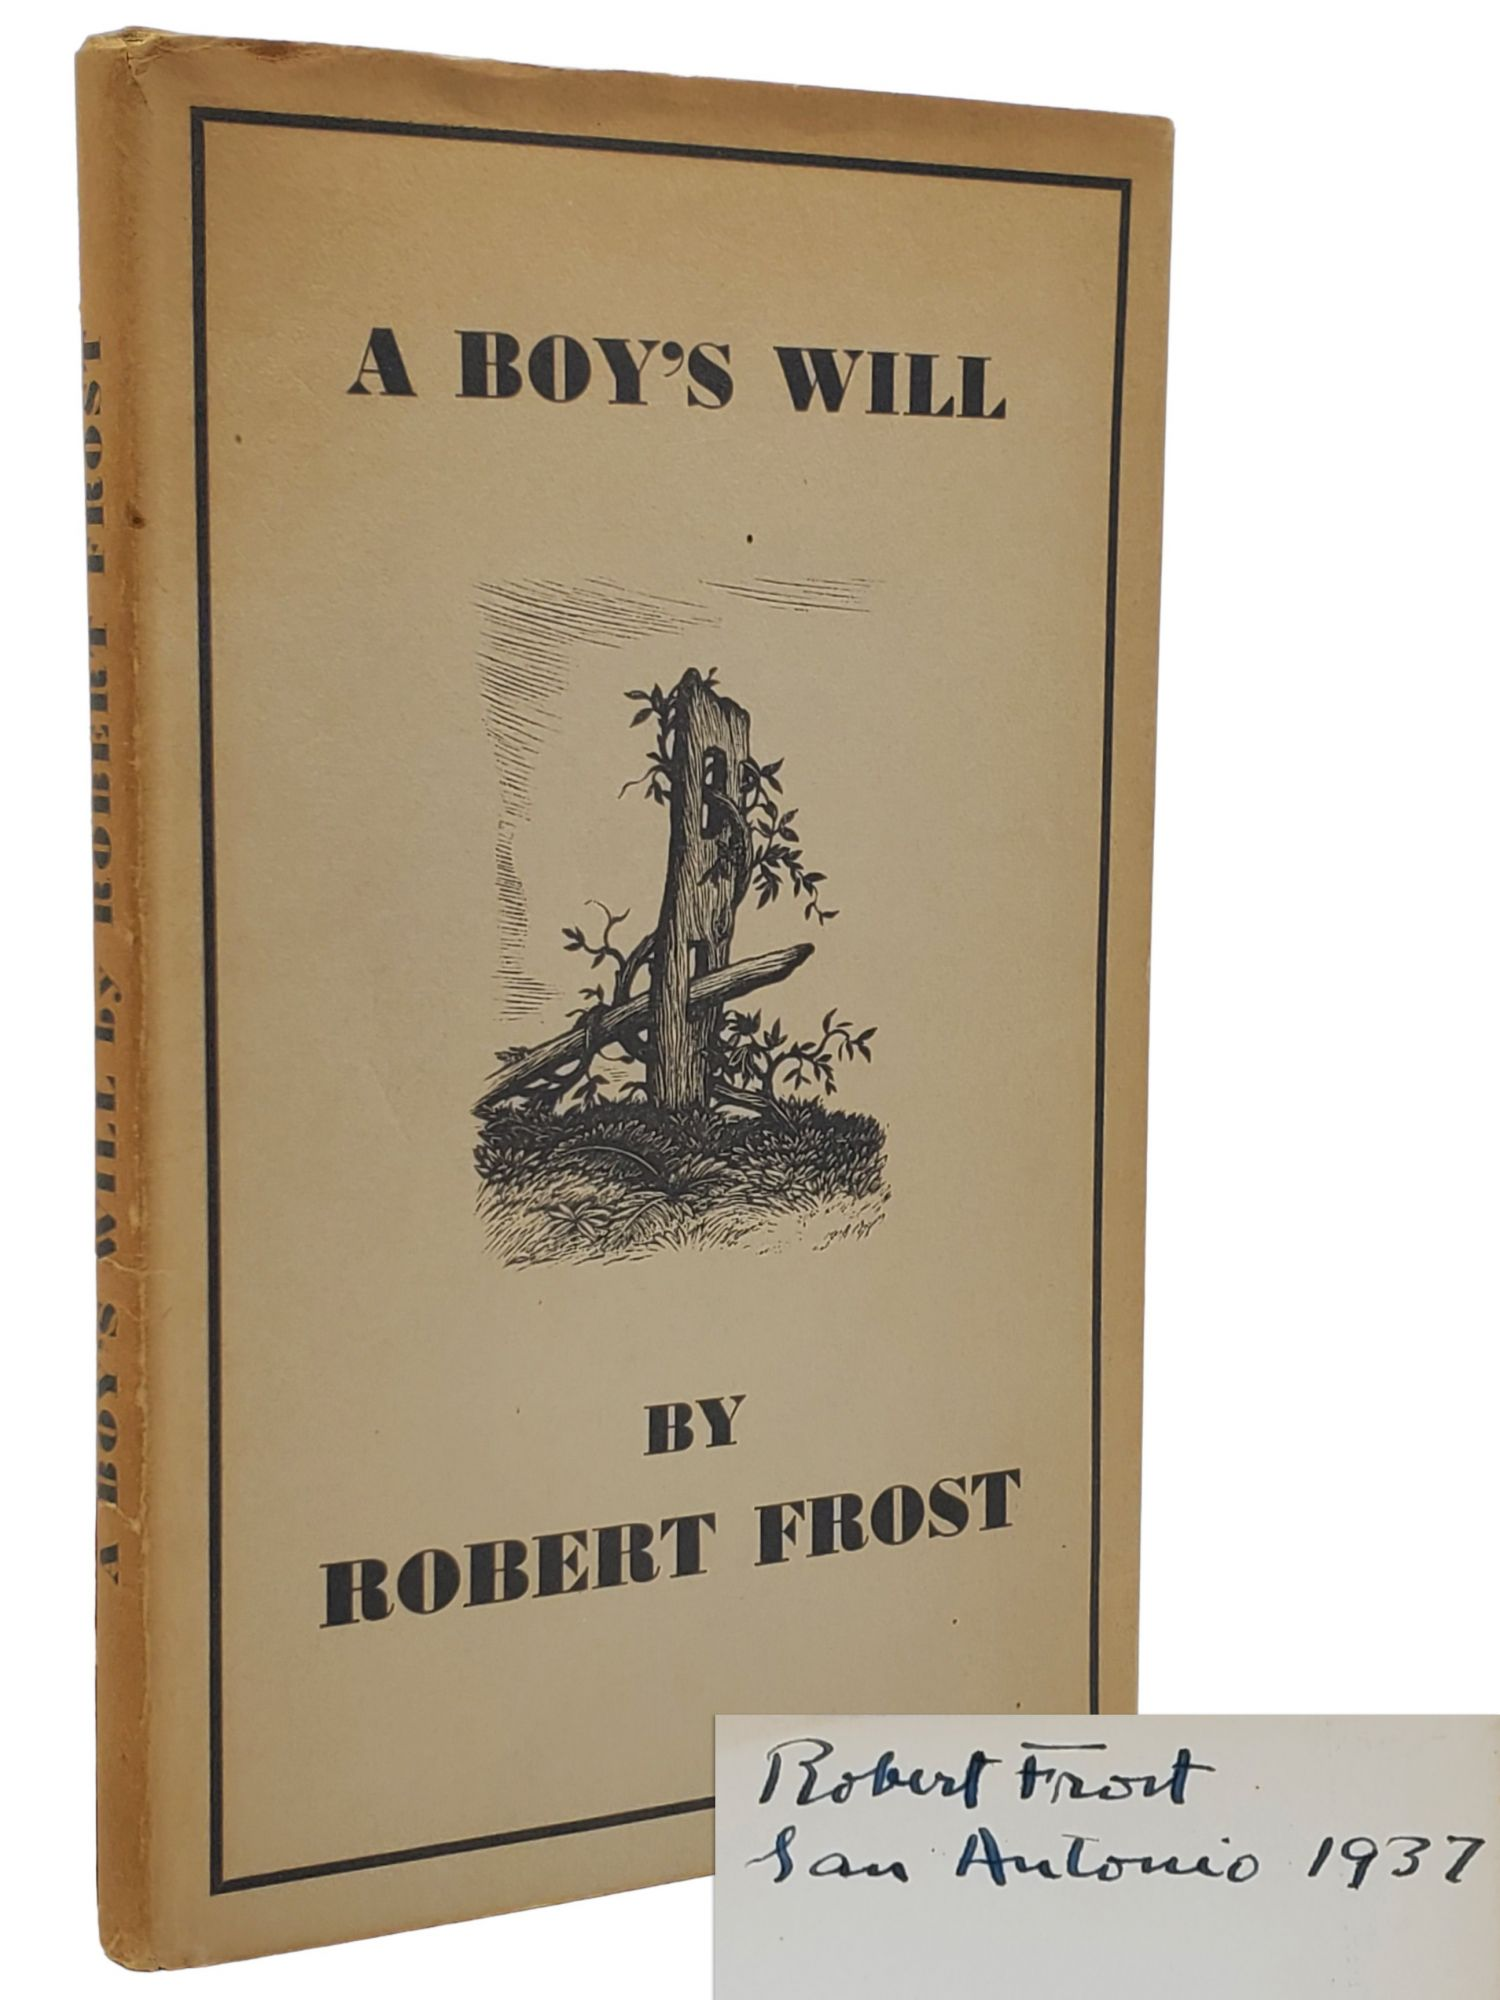 A BOY'S WILL. Robert Frost.